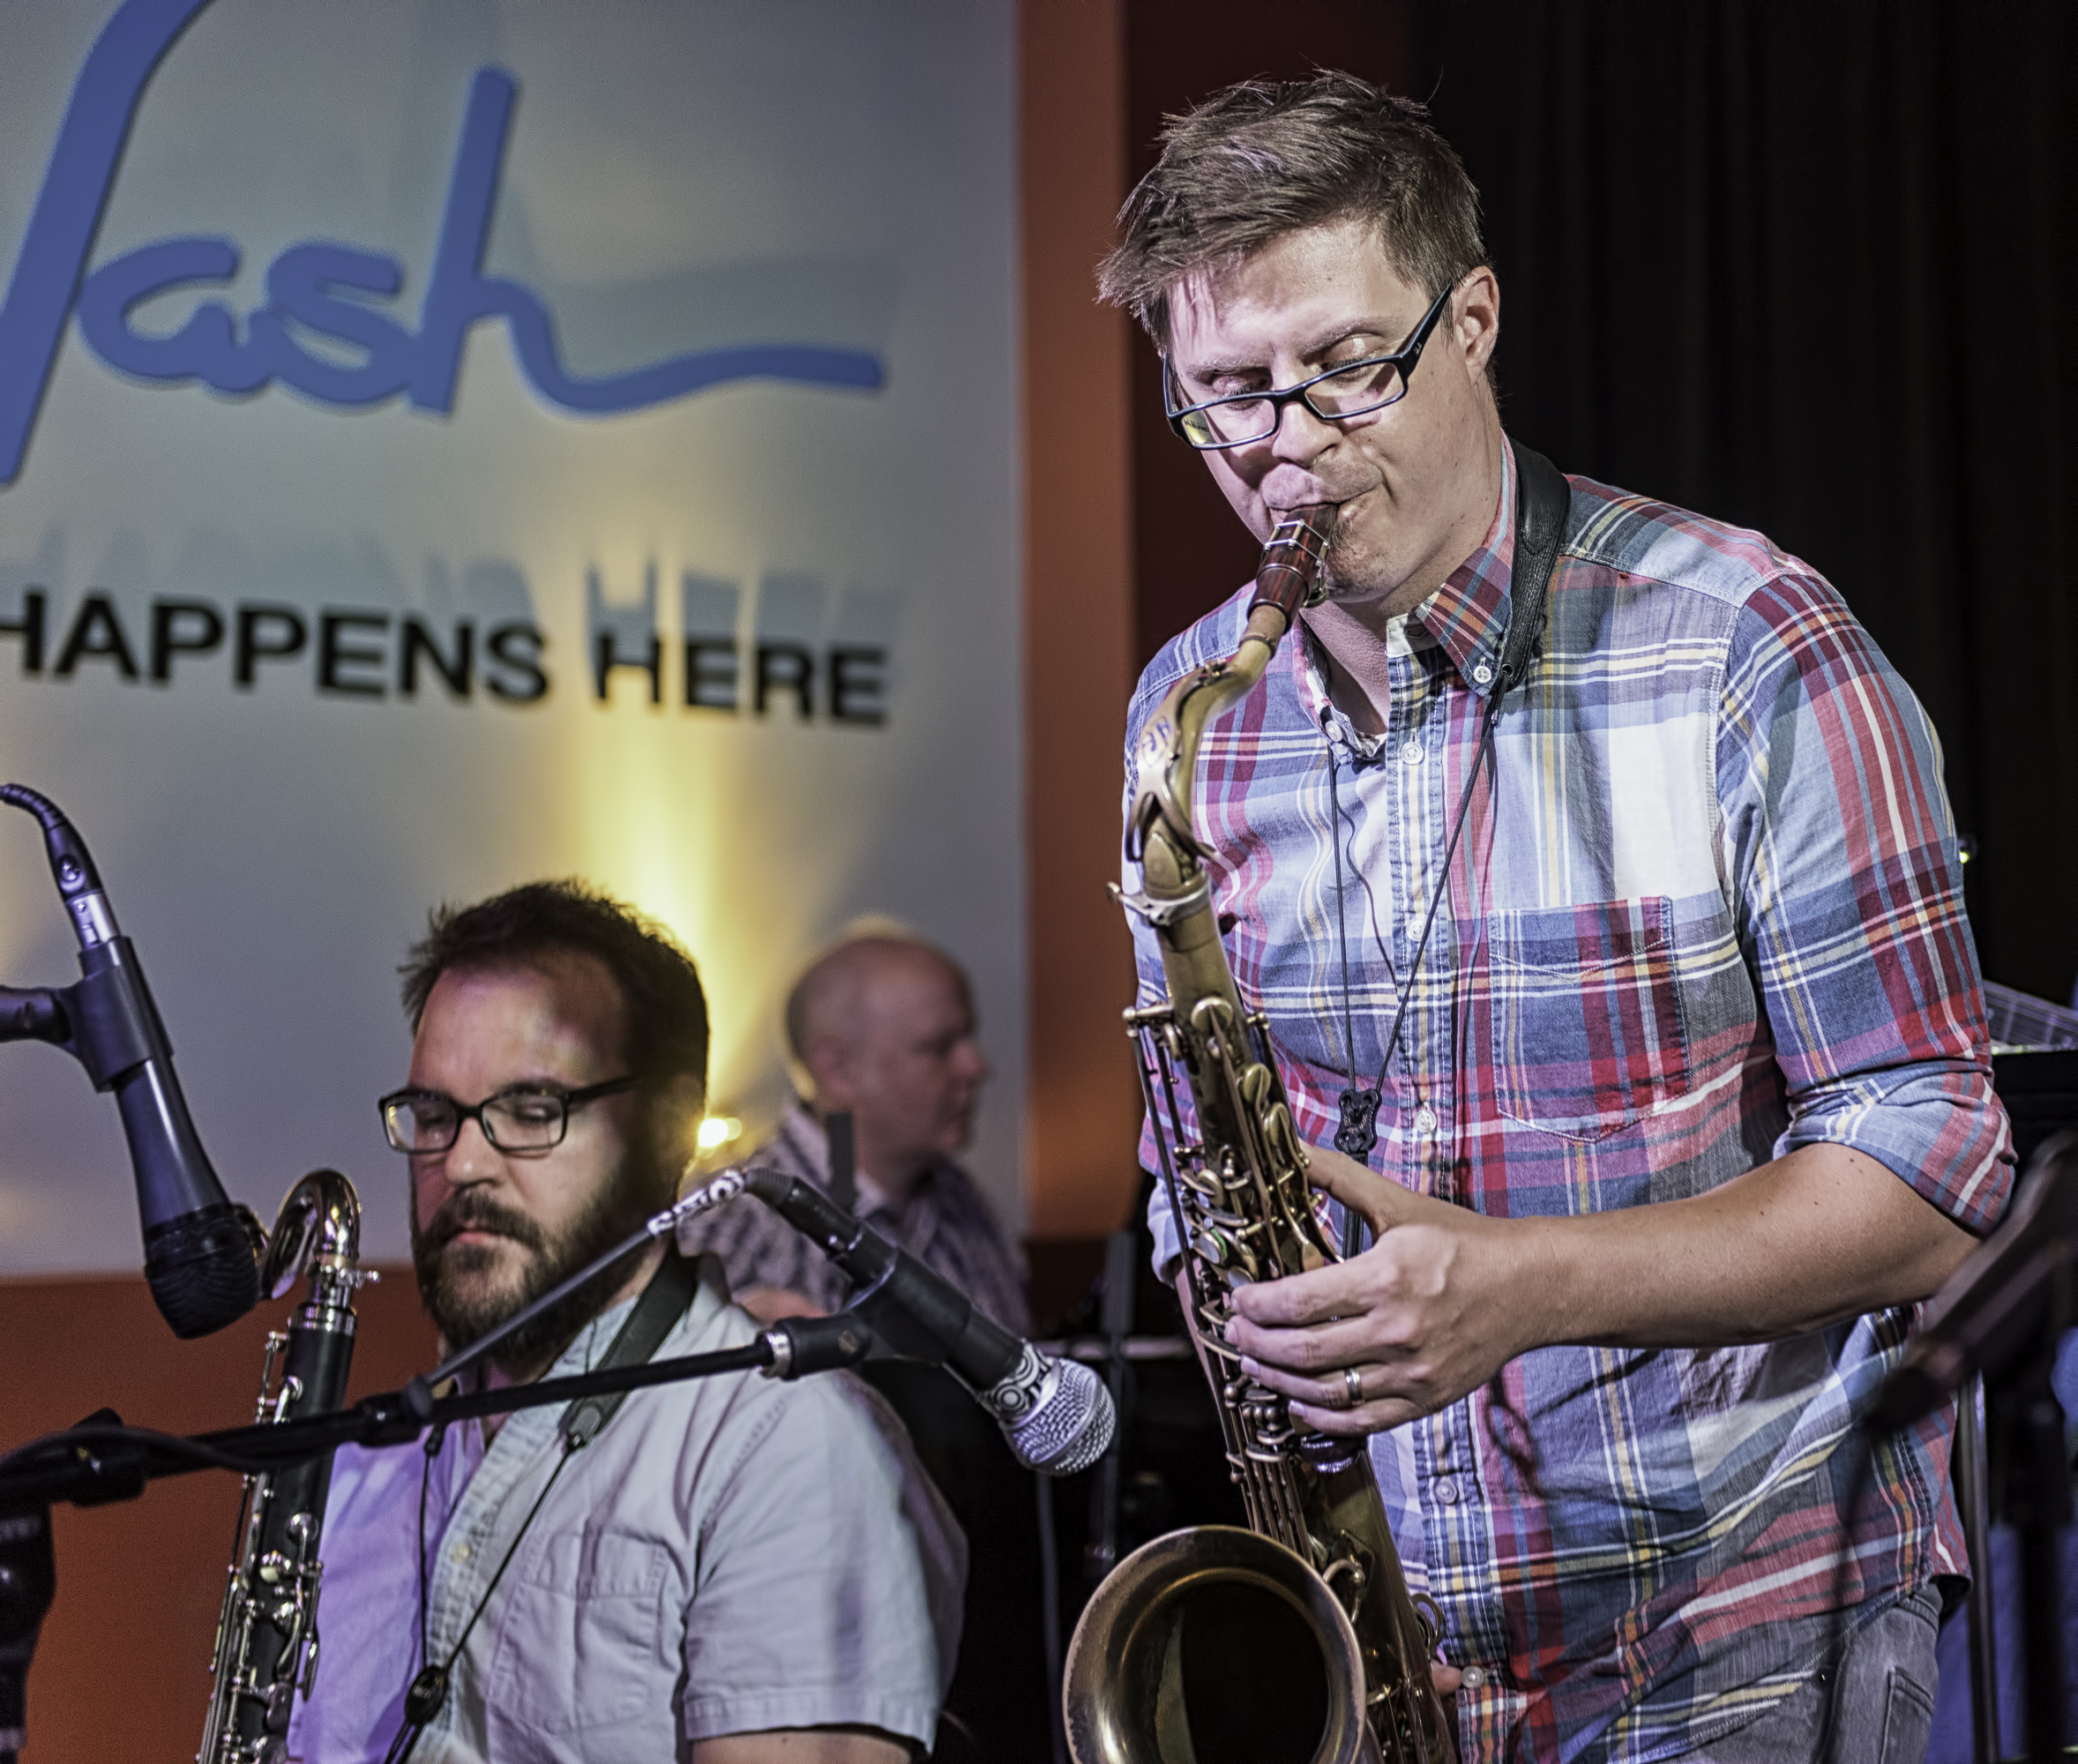 Keith Kelly, Adam Roberts And Russell Schmidt With The Nash Composers Coalition At The Nash In Phoenix